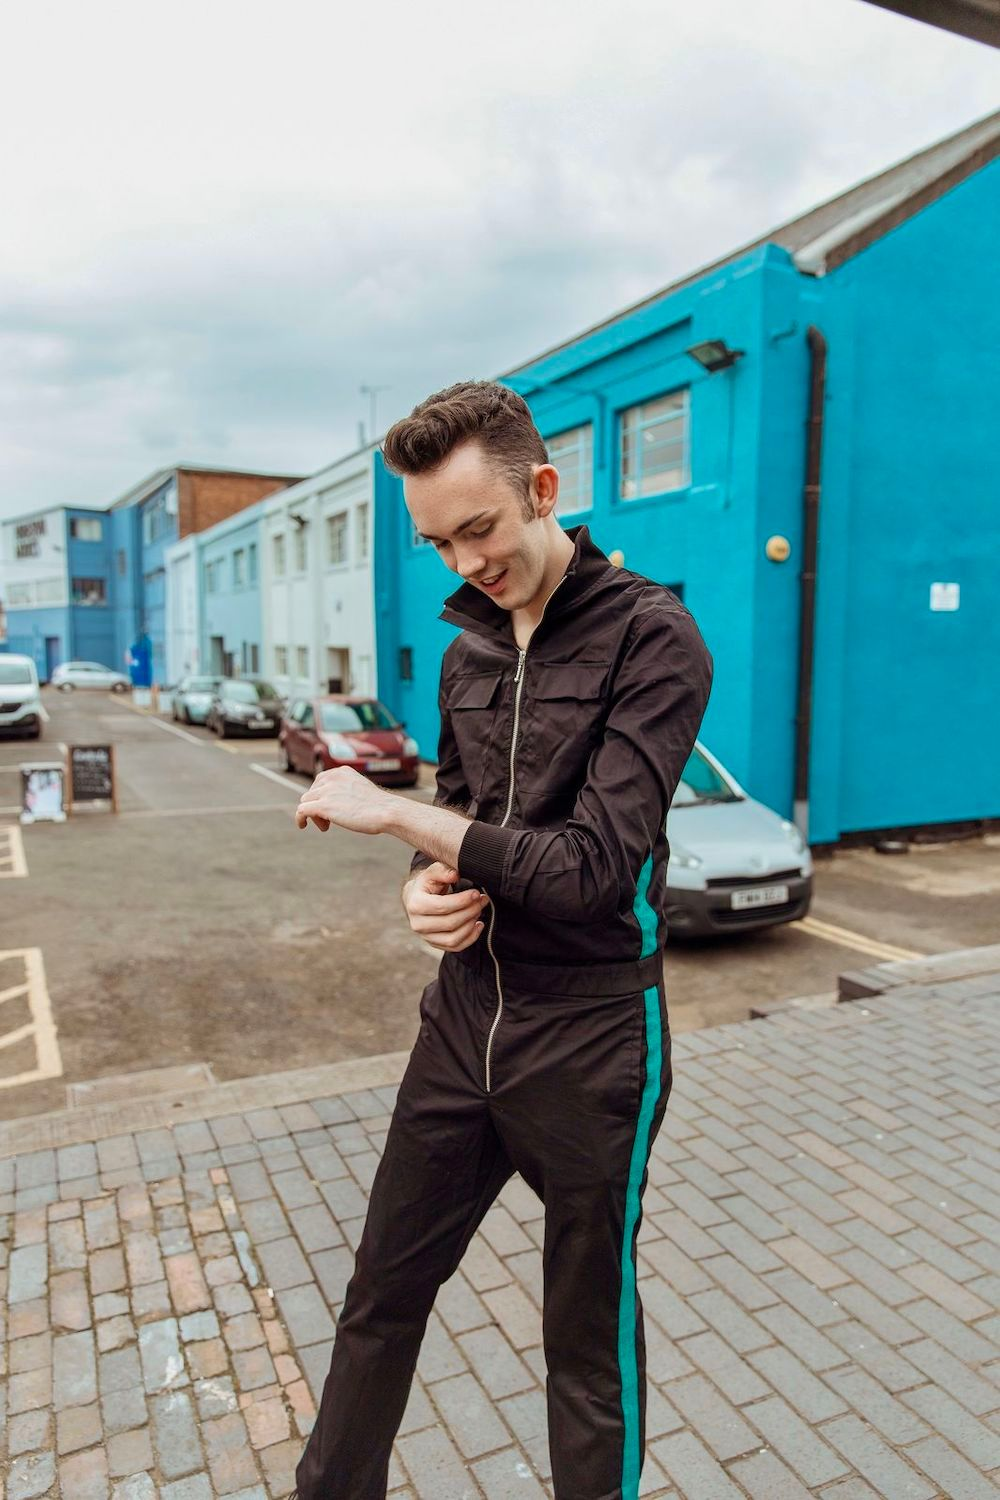 Jack standing and smiling infront of bright buildings